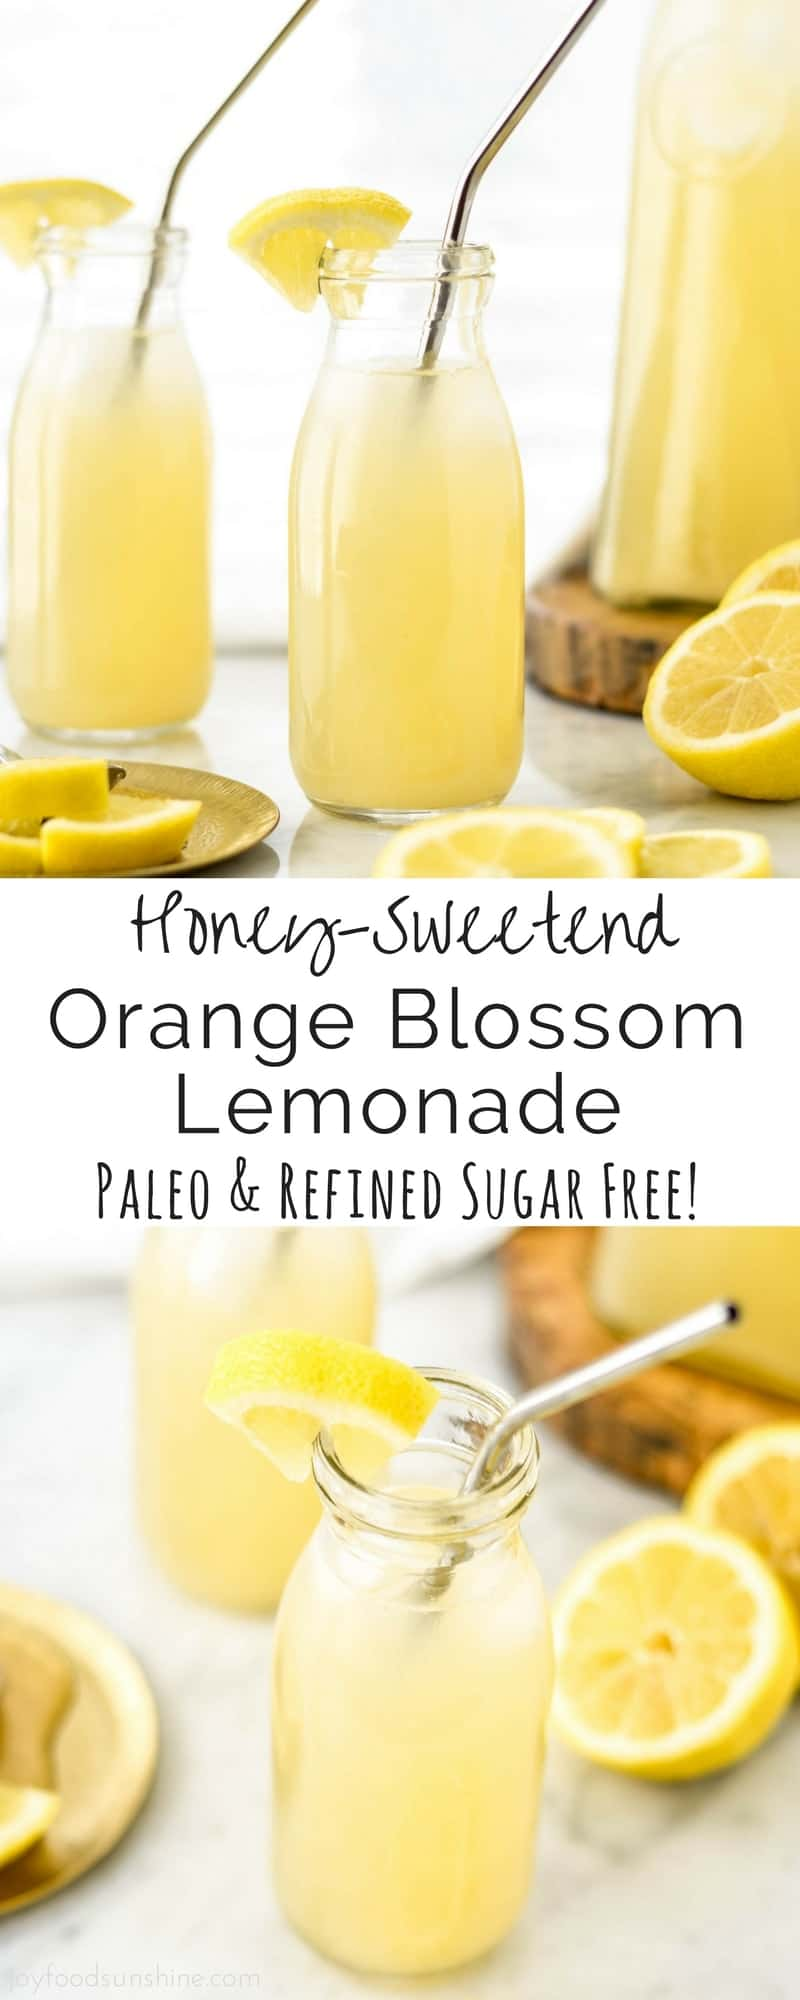 This Honey-Sweetened Orange Blossom Lemonade is made with 4 ingredients and comes together in 5 minutes! Paleo & Vegan-Friendly!